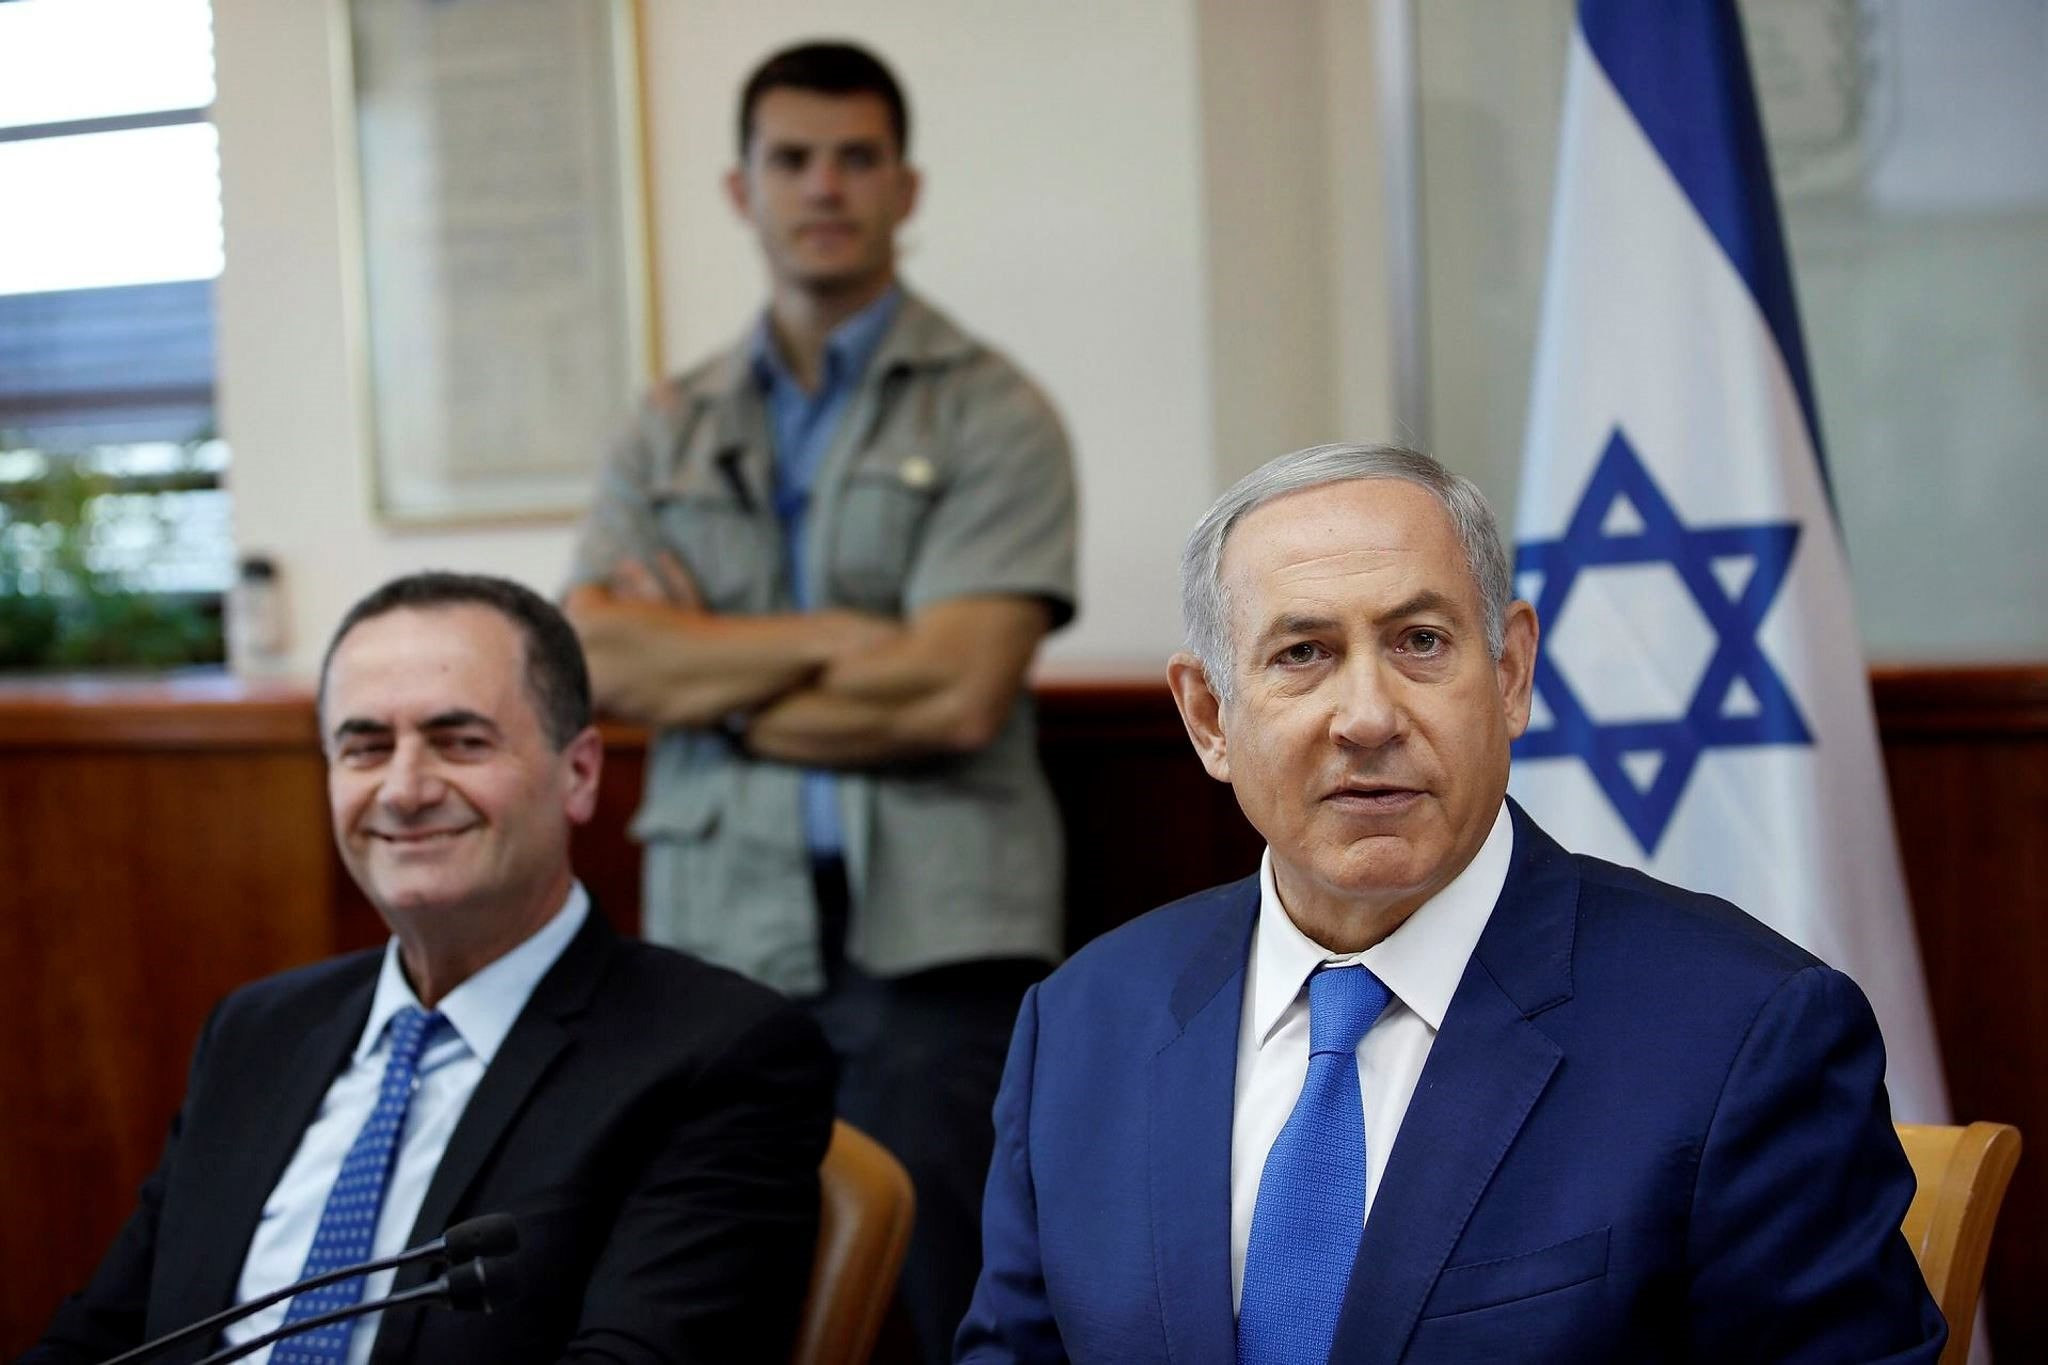 Following the Israeli Prime Minister Benjamin Netanyahuu2019s visit, the minister of transportation and intelligence, Yisrael Katz (L) arrived in Oman to push for a railway project.